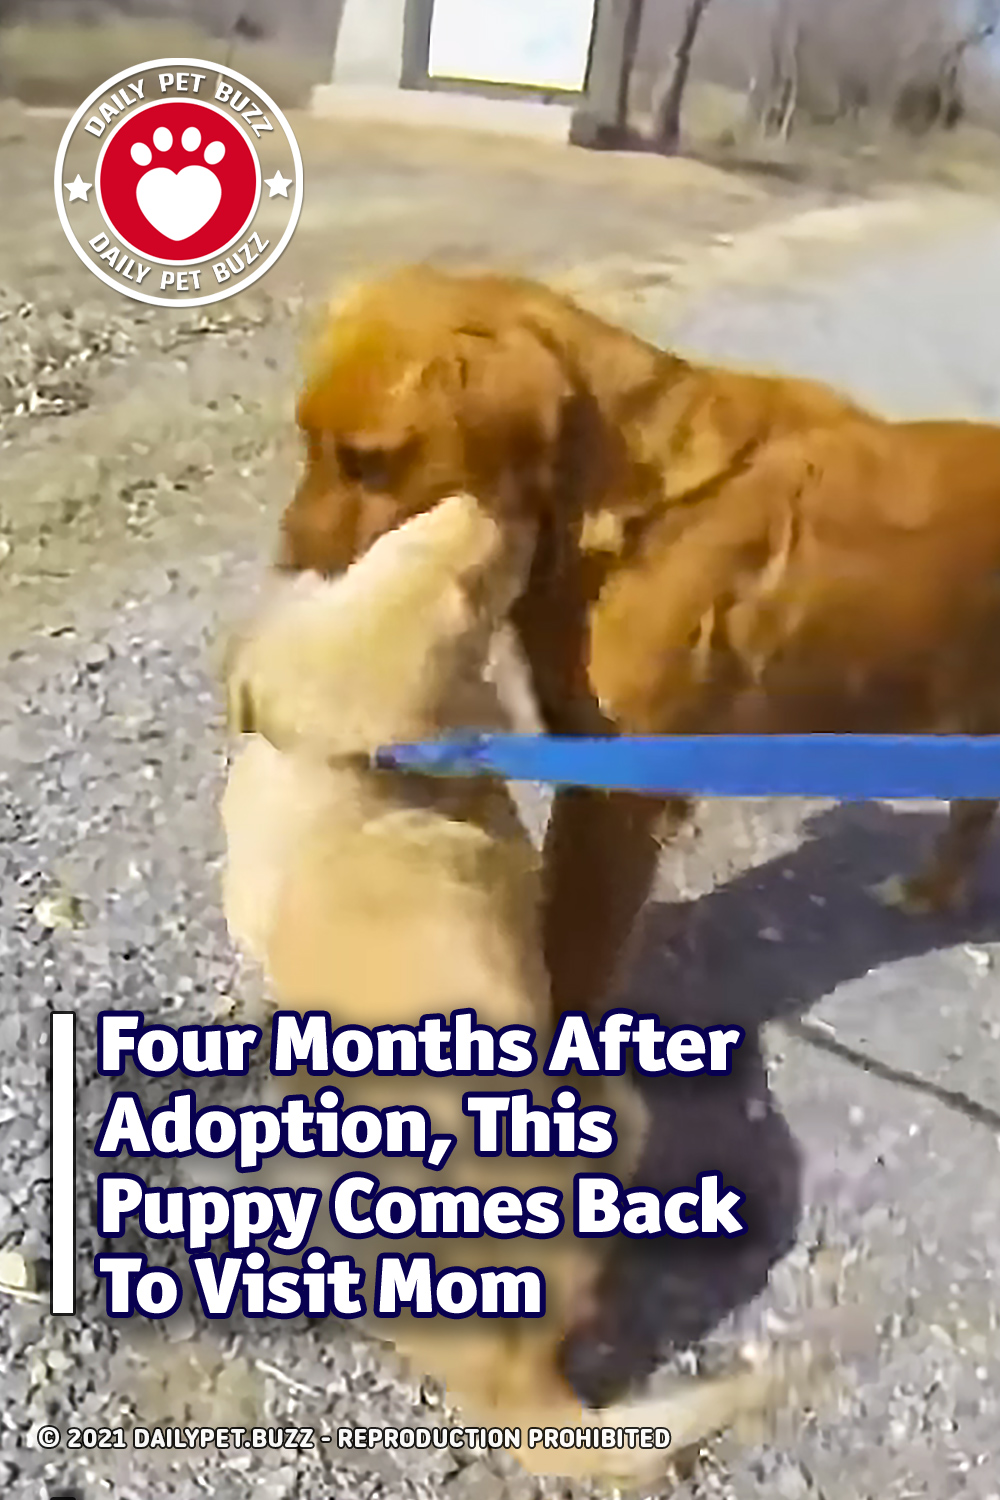 Four Months After Adoption, This Puppy Comes Back To Visit Mom